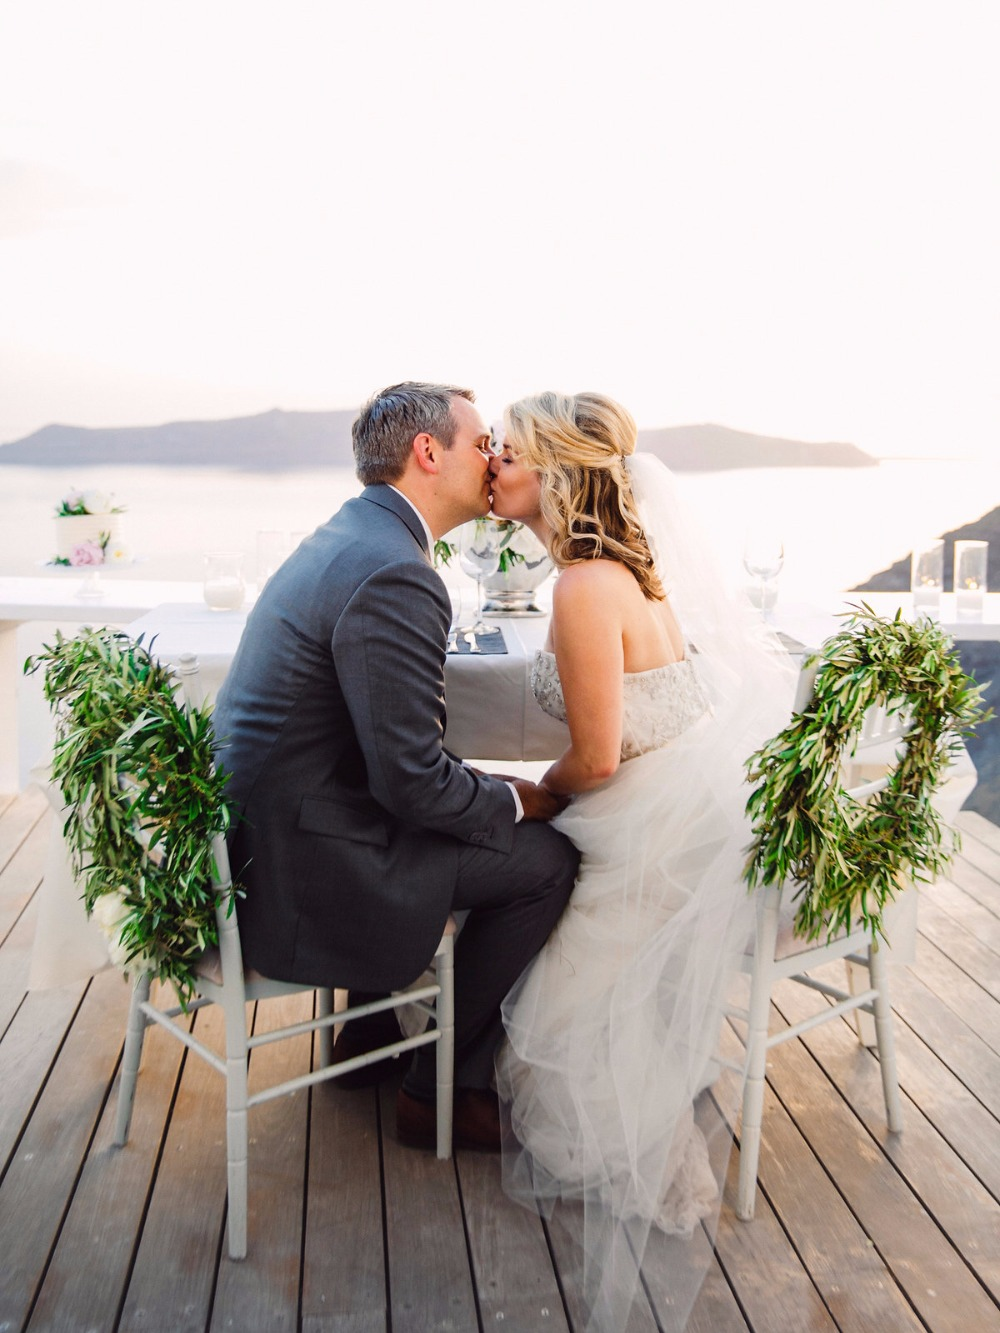 Congrats to these newlyweds in Santorini